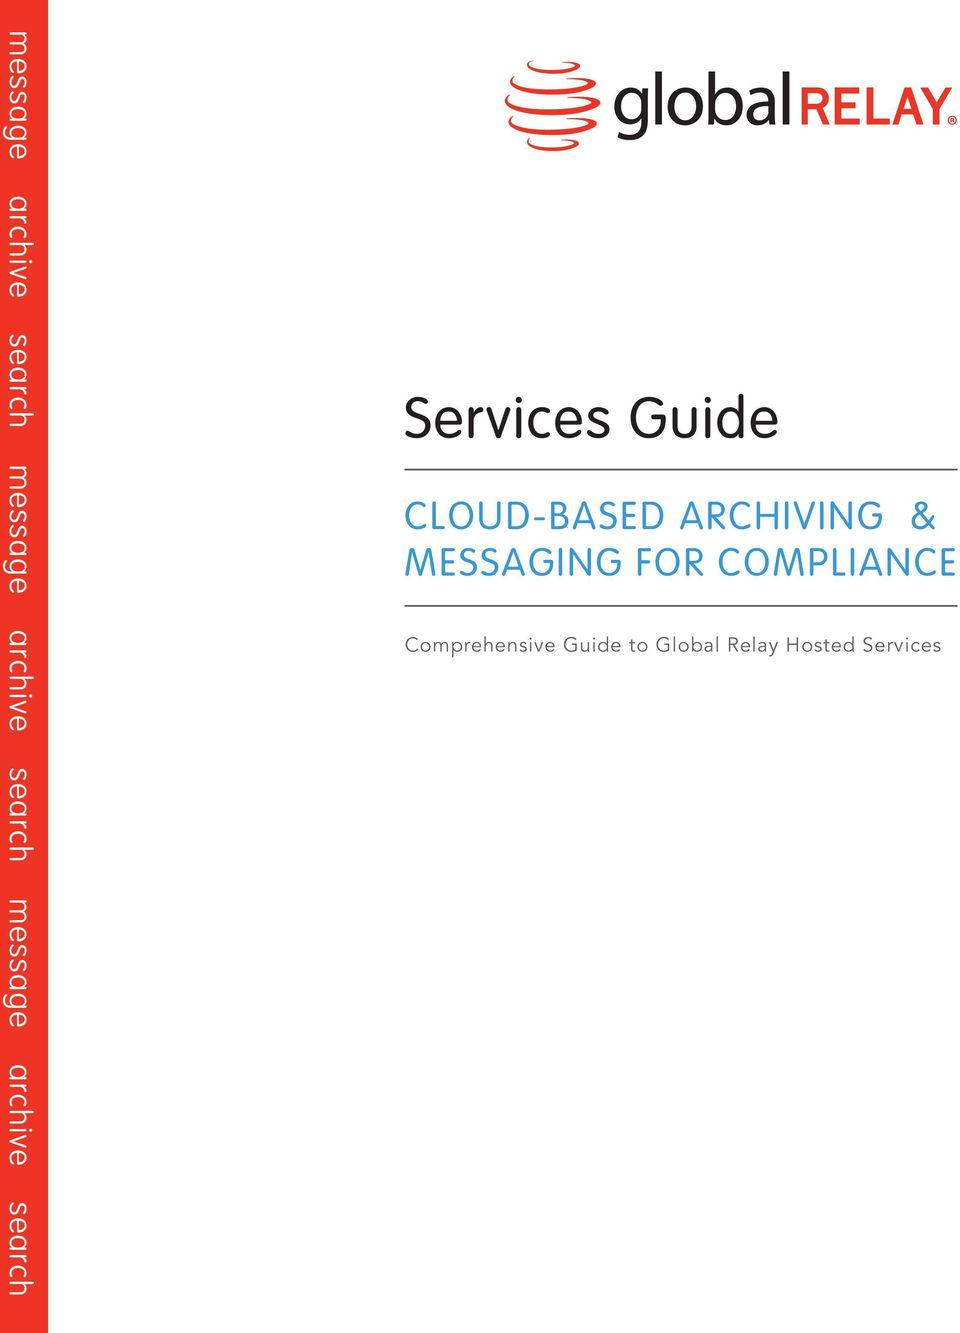 CLOUD-BASED ARCHIVING & MESSAGING FOR